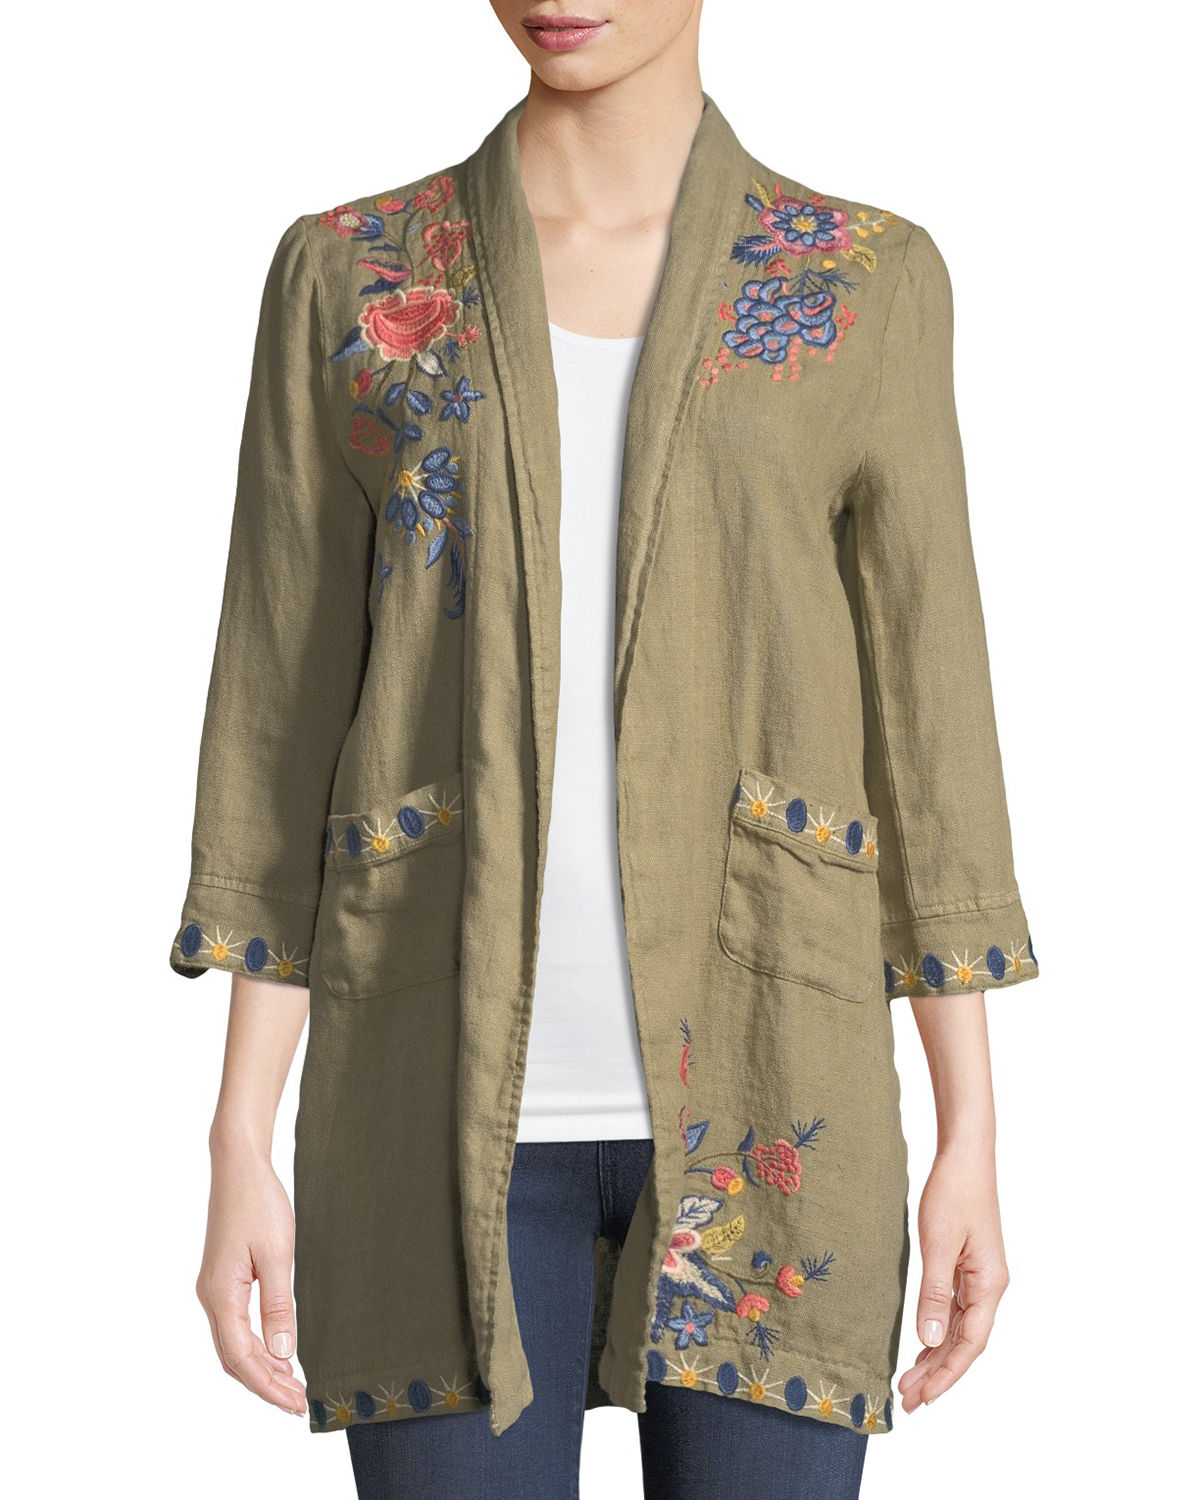 Johnny Was Coats TIVVA HEAVY LINEN EMBROIDERED COAT